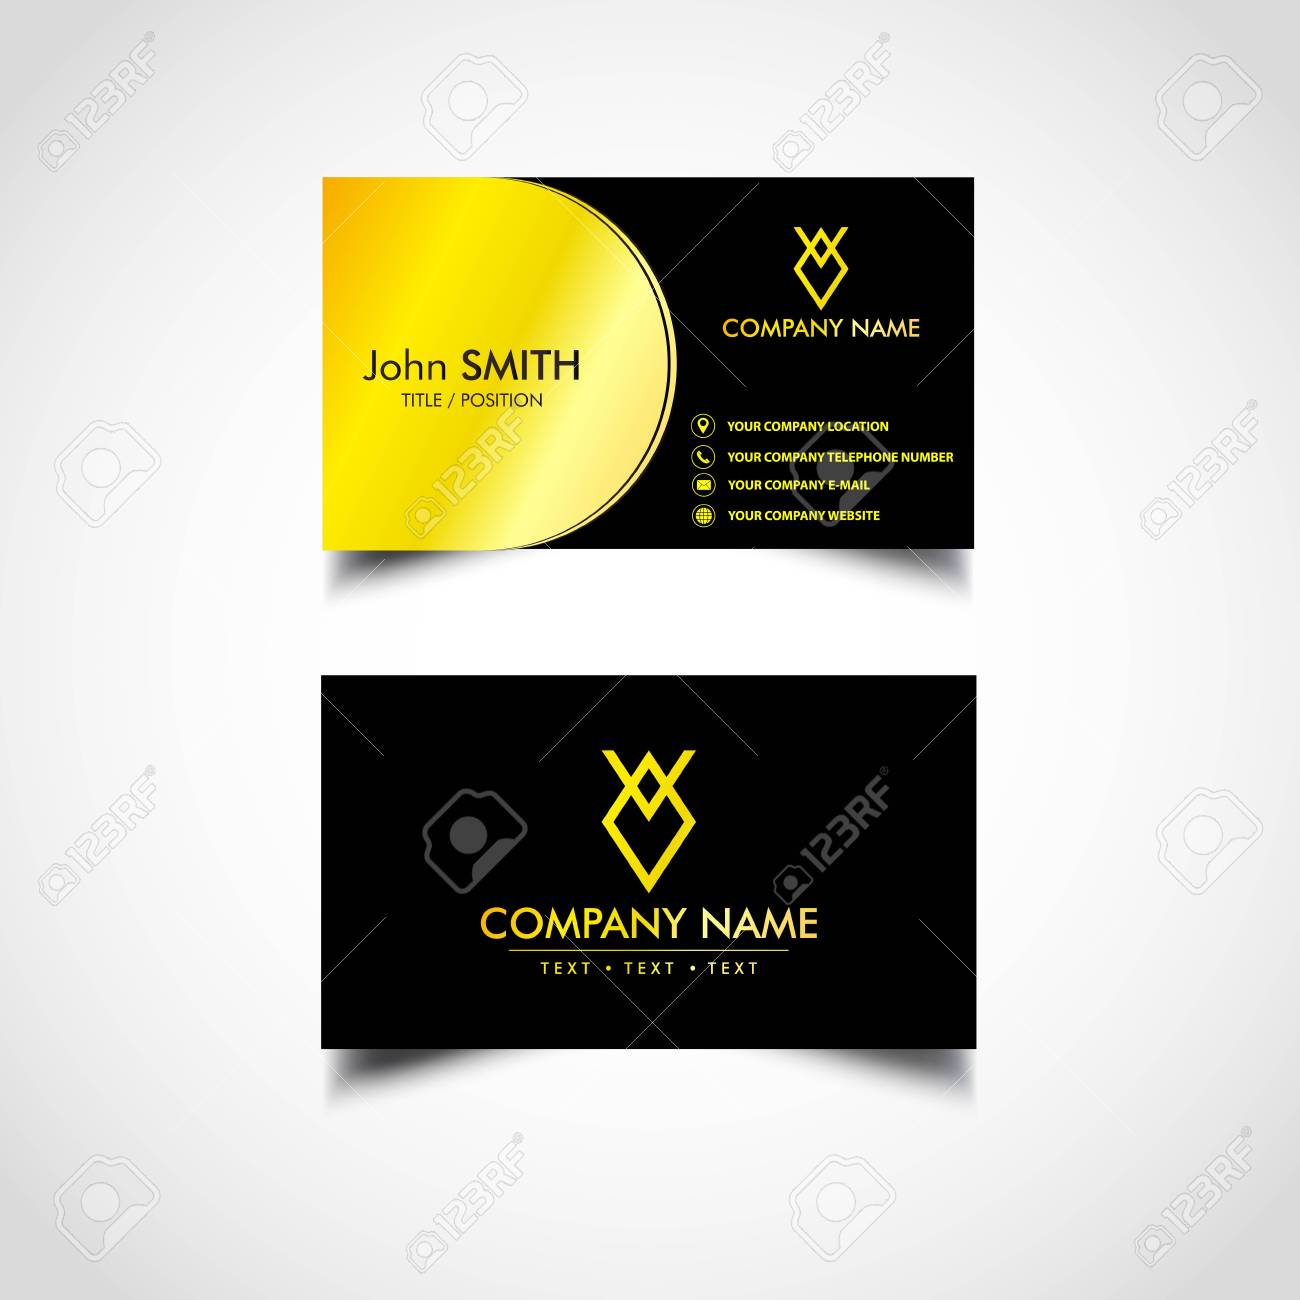 Golden business card template vector us size eps file royalty golden business card template vector us size eps file stock vector 92738079 friedricerecipe Gallery